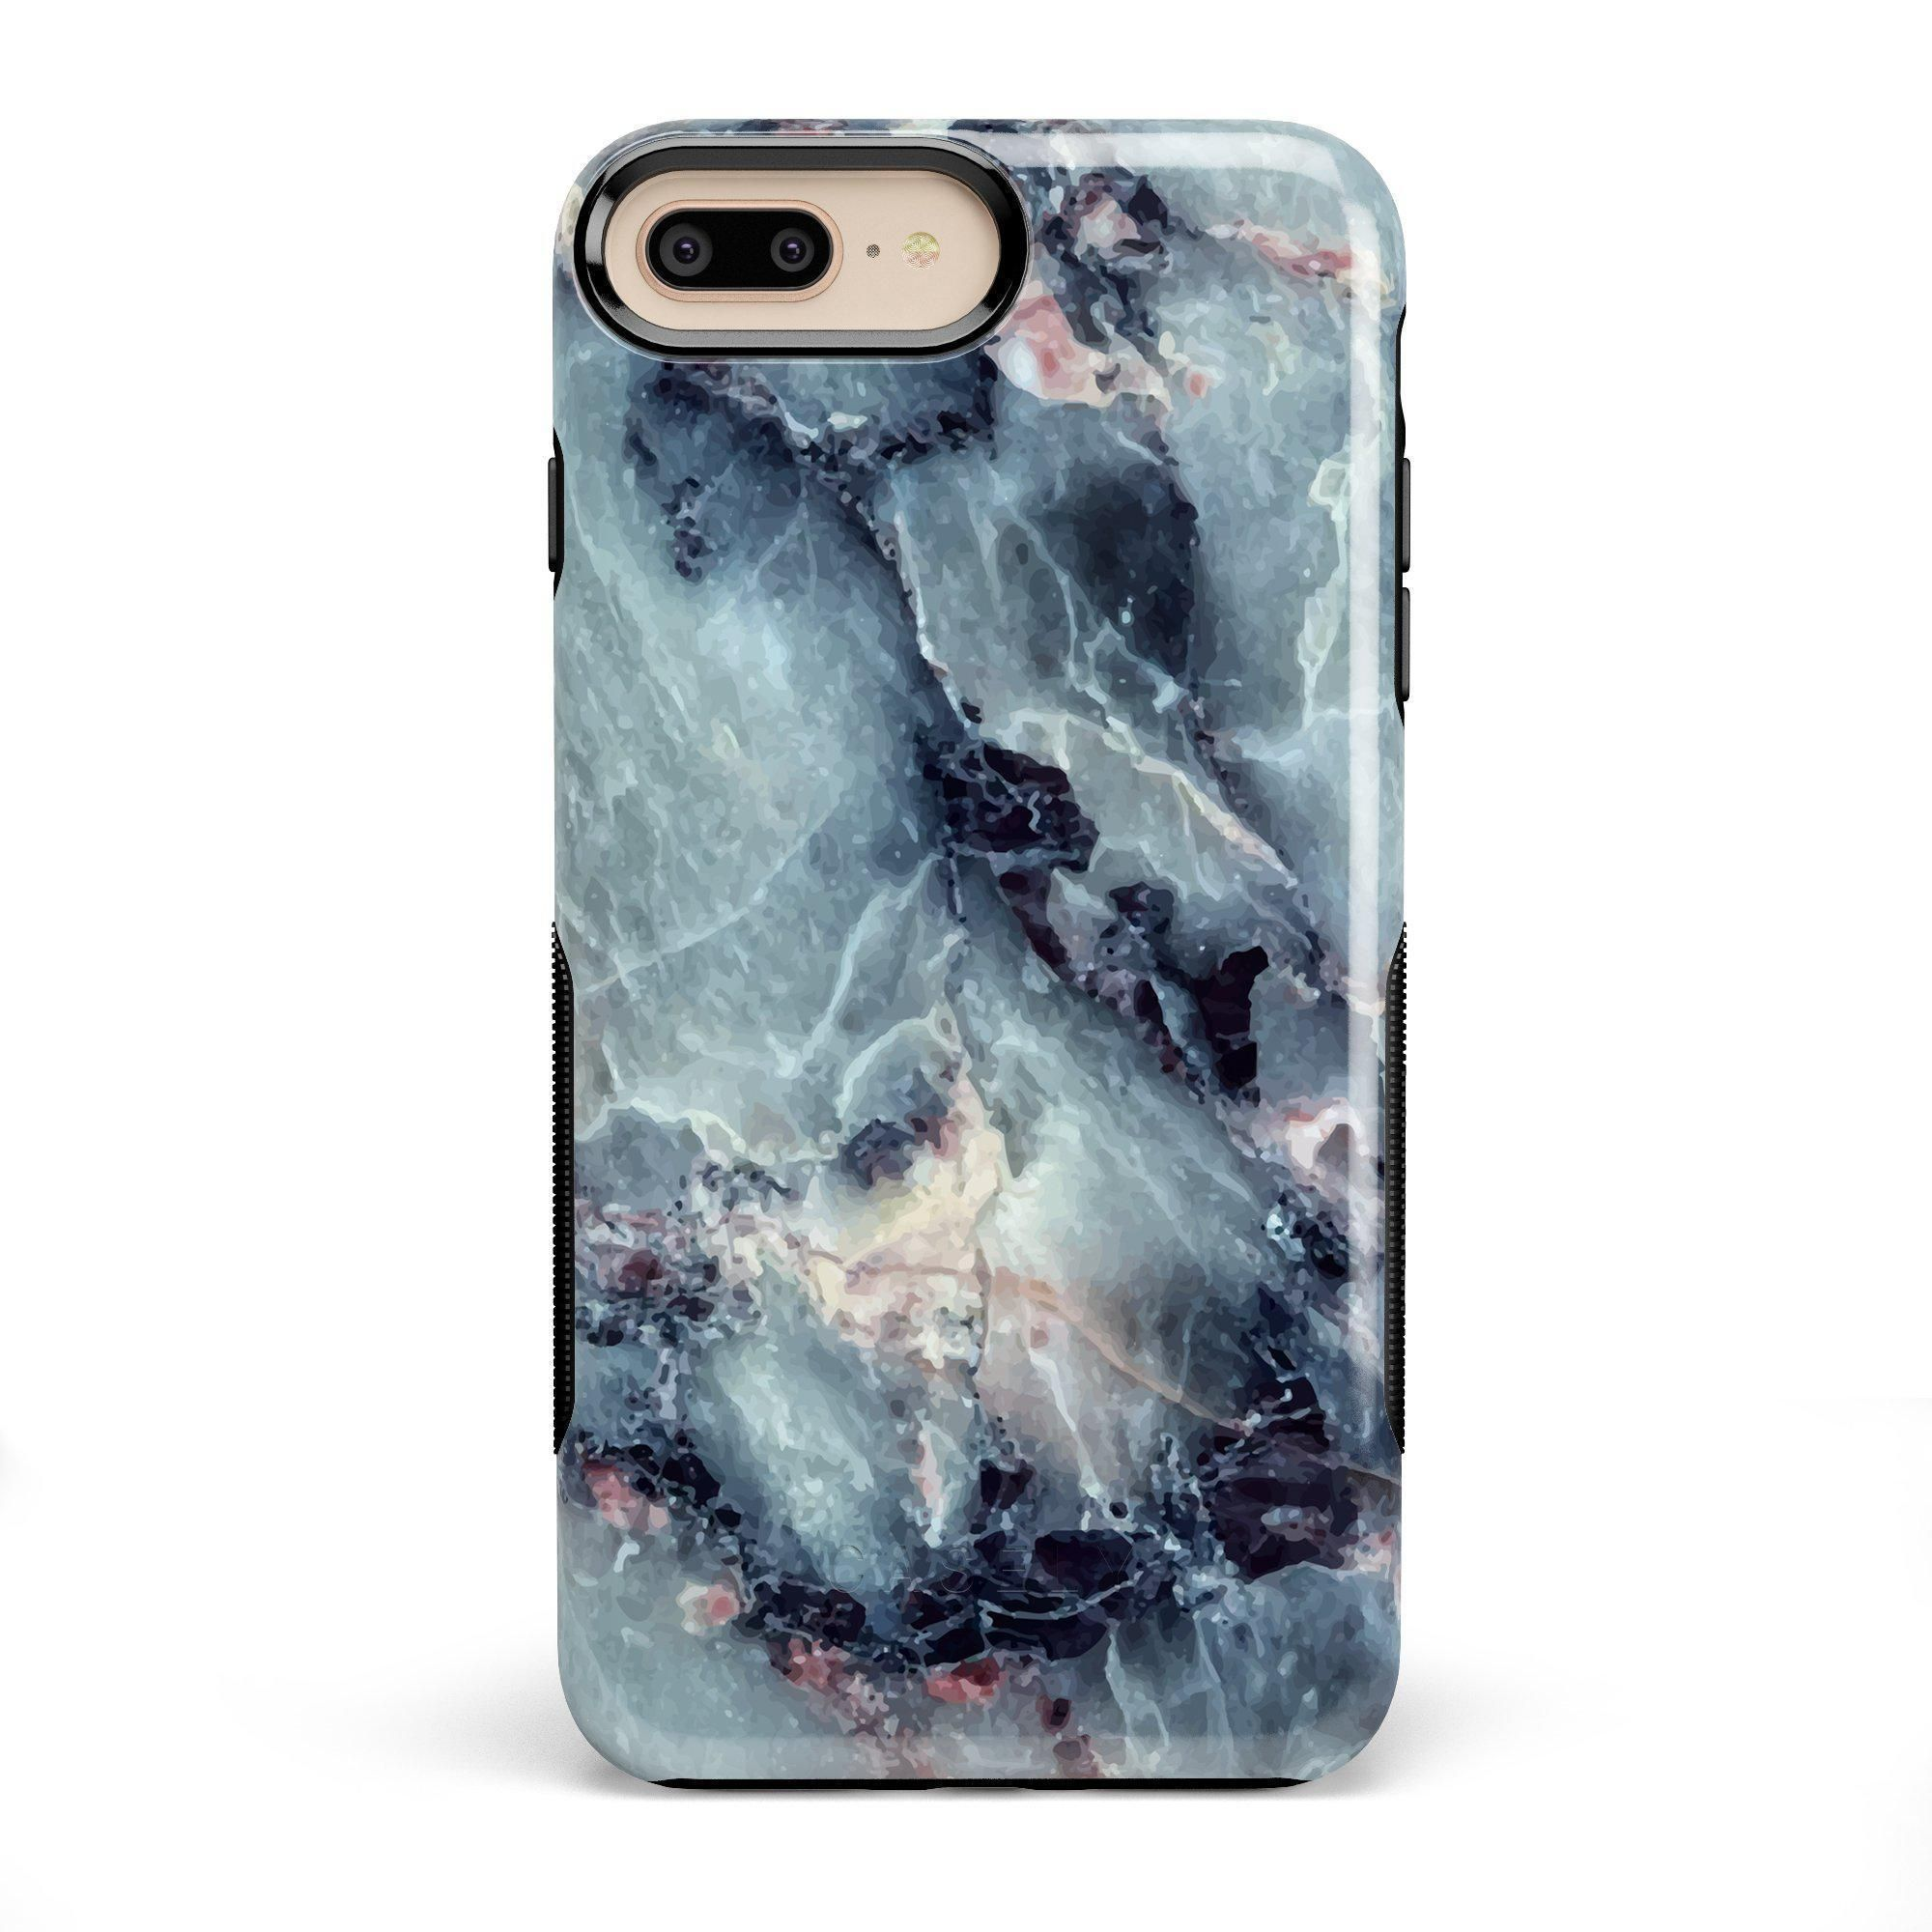 Classic Blue Marble Case In 2020 Phone Cases Marble Marble Iphone Case Marble Iphone